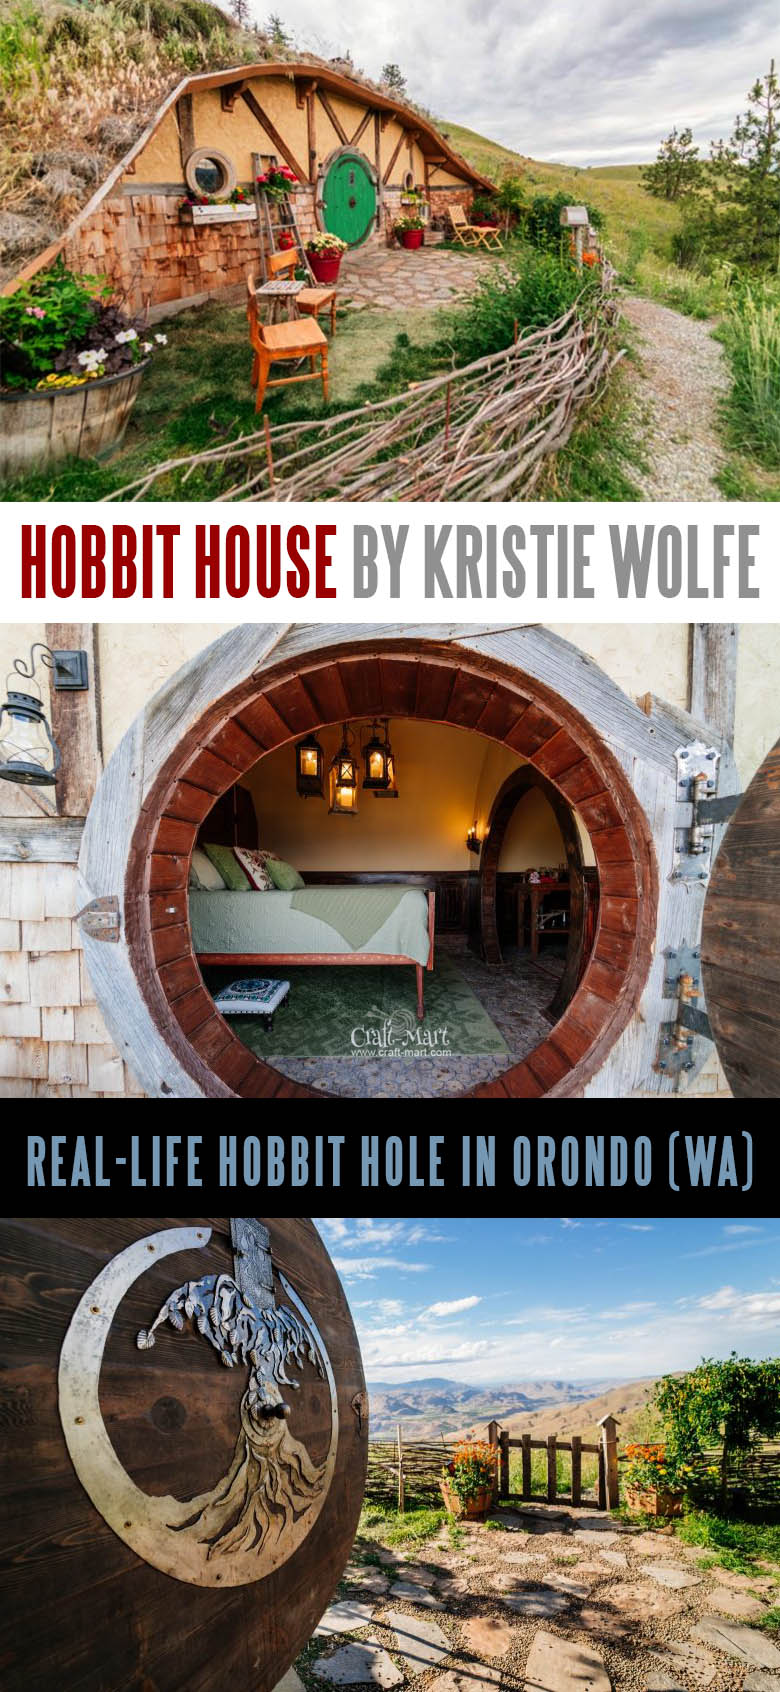 One of the cutest Hobbit houses around that you may rent for a night. Give it a try or read about prefab tiny hobbit homes.